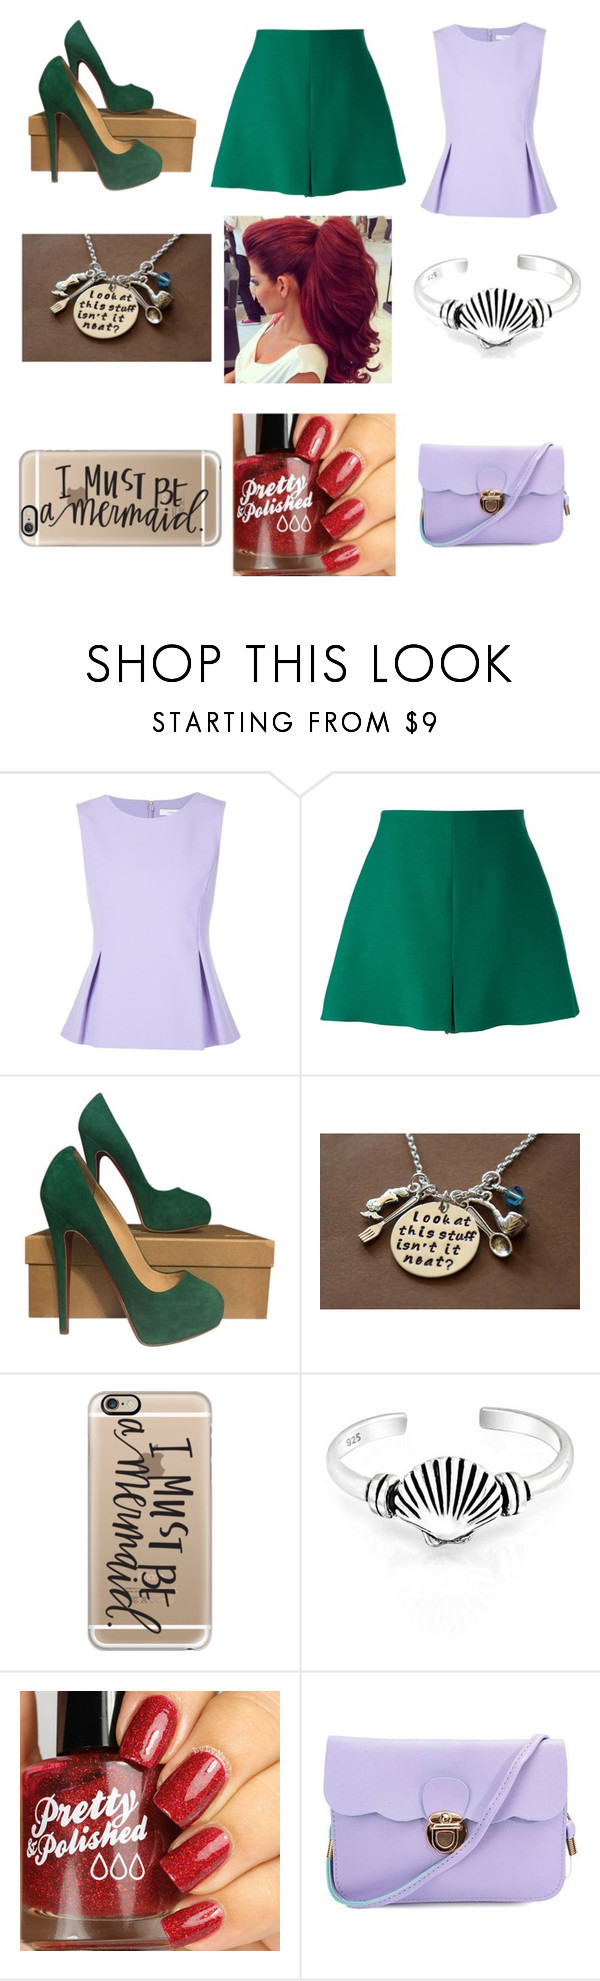 """Ariel..."" by singerforlyfe ❤ liked on Polyvore featuring Diane Von Furstenberg, Valentino, Christian Louboutin, Casetify, Bling Jewelry, women's clothing, women's fashion, women, female and woman"